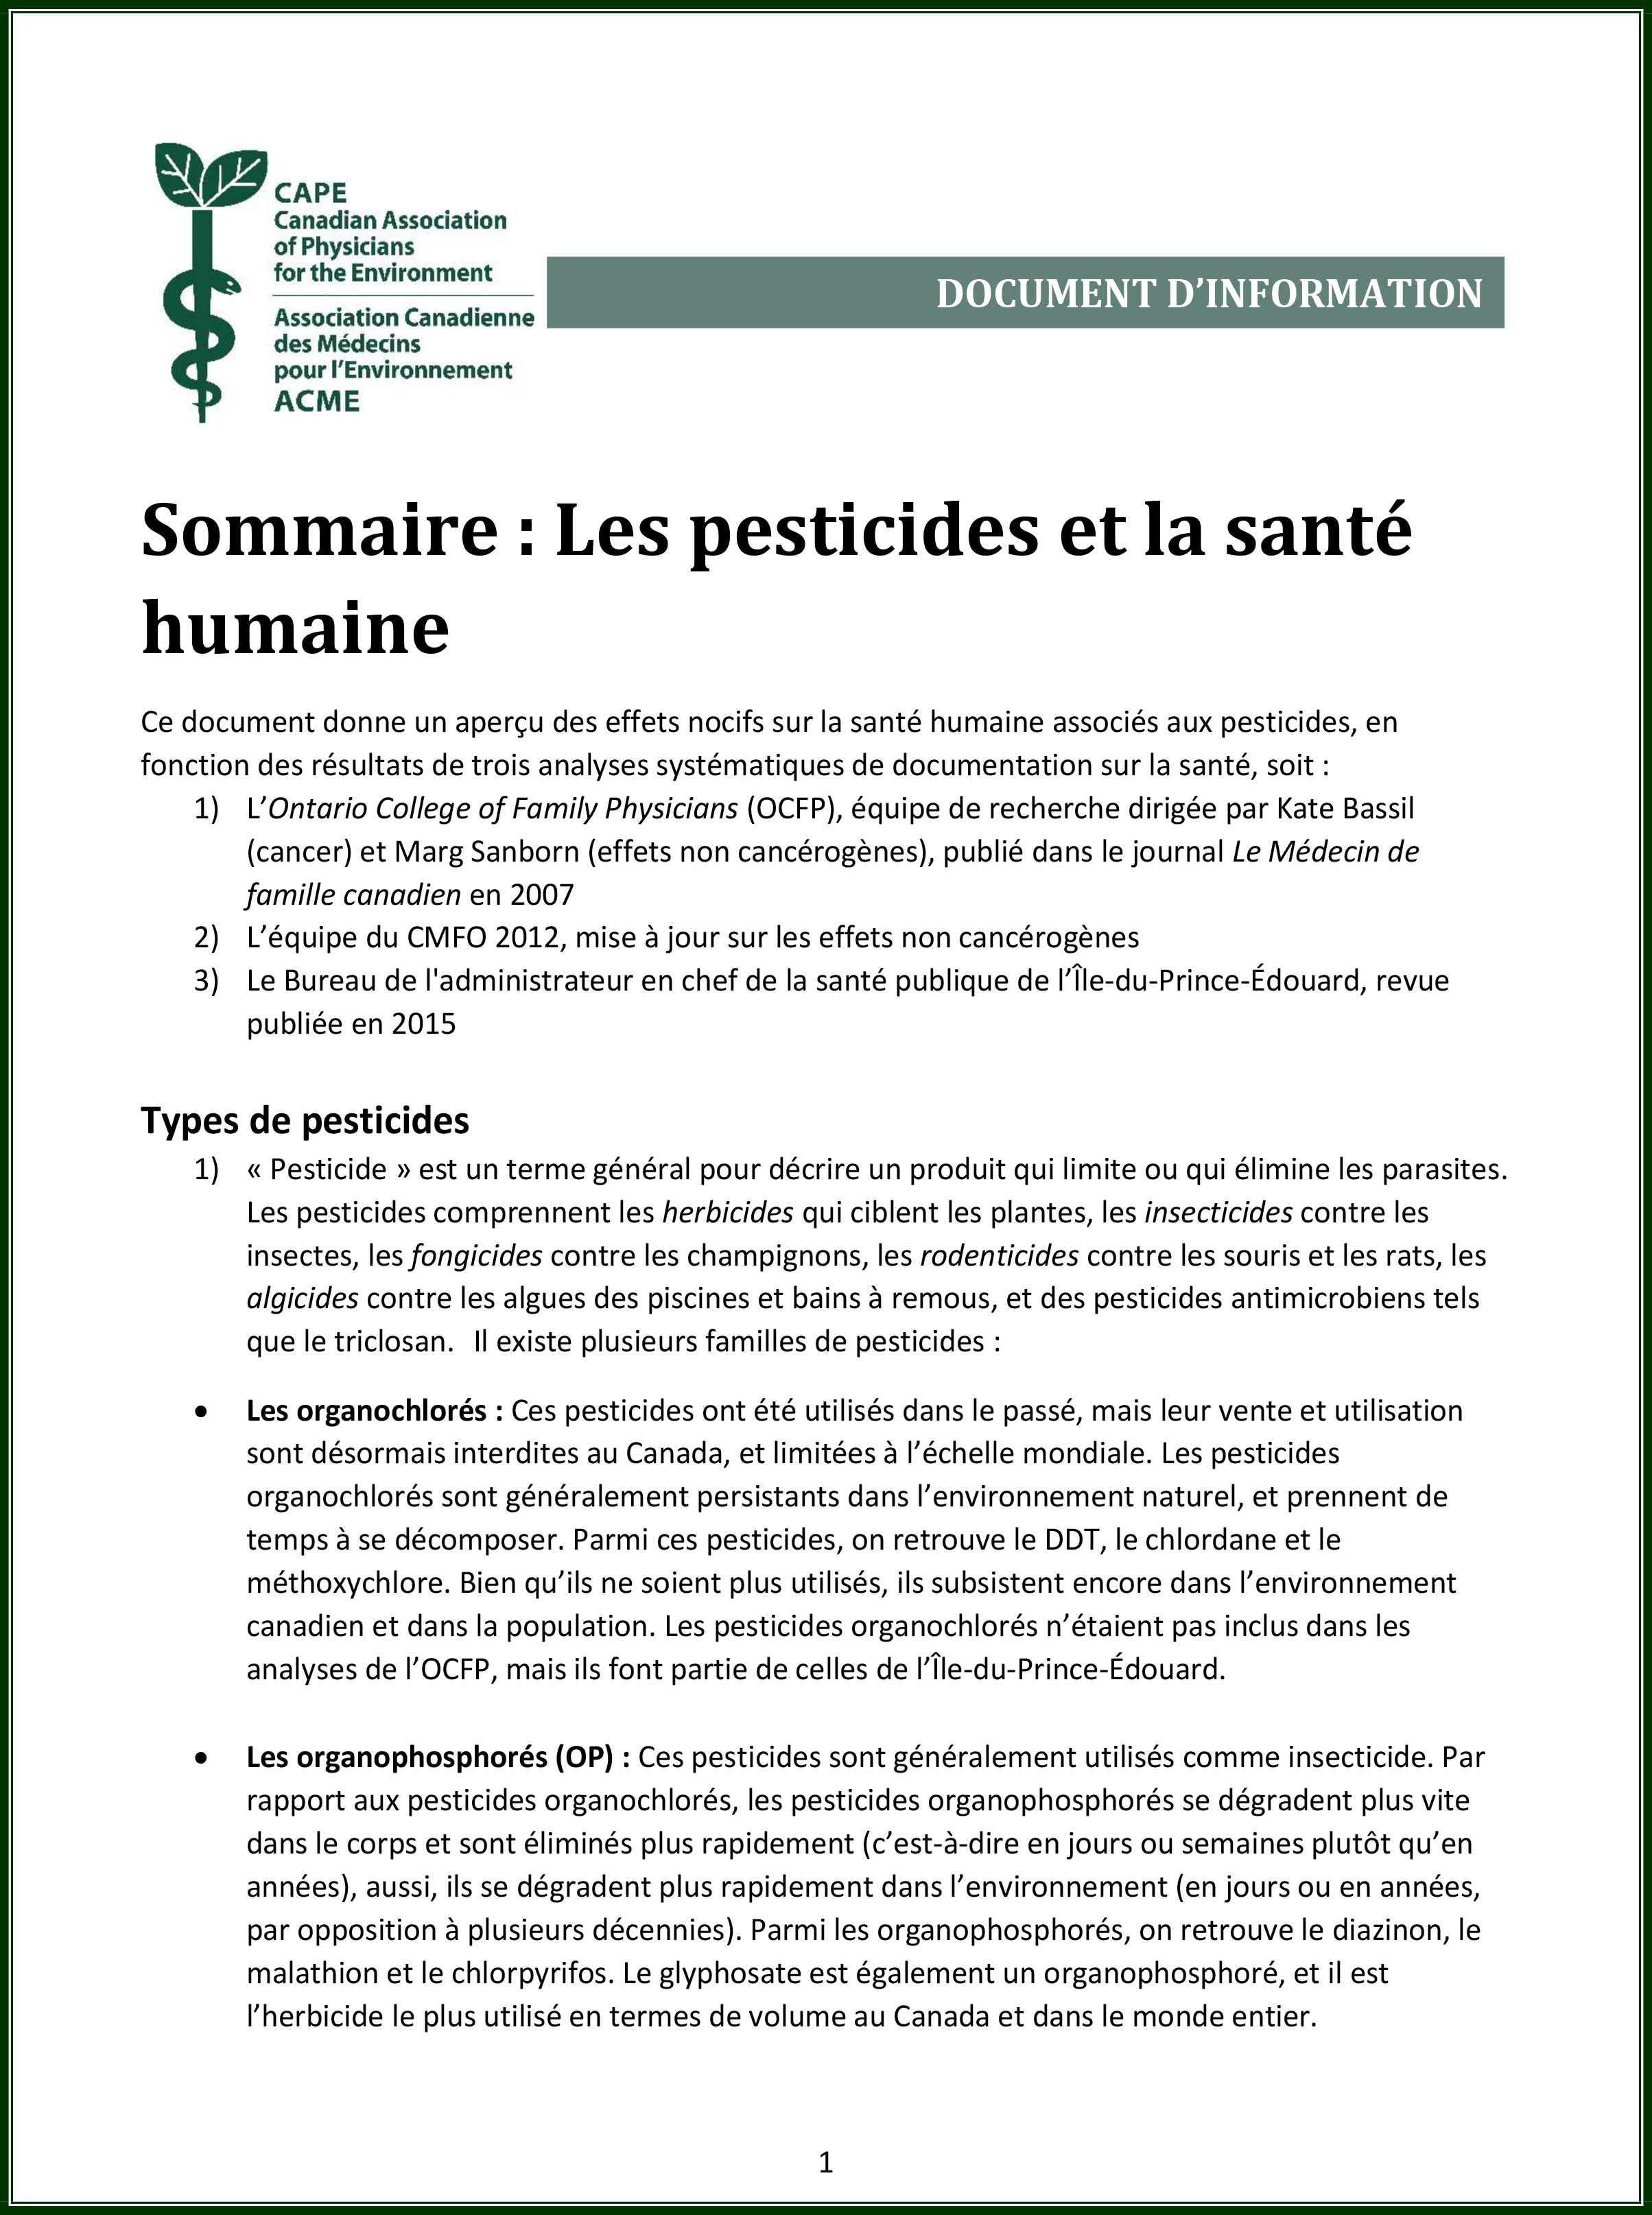 Document d'information - Les Pesticides et la sante